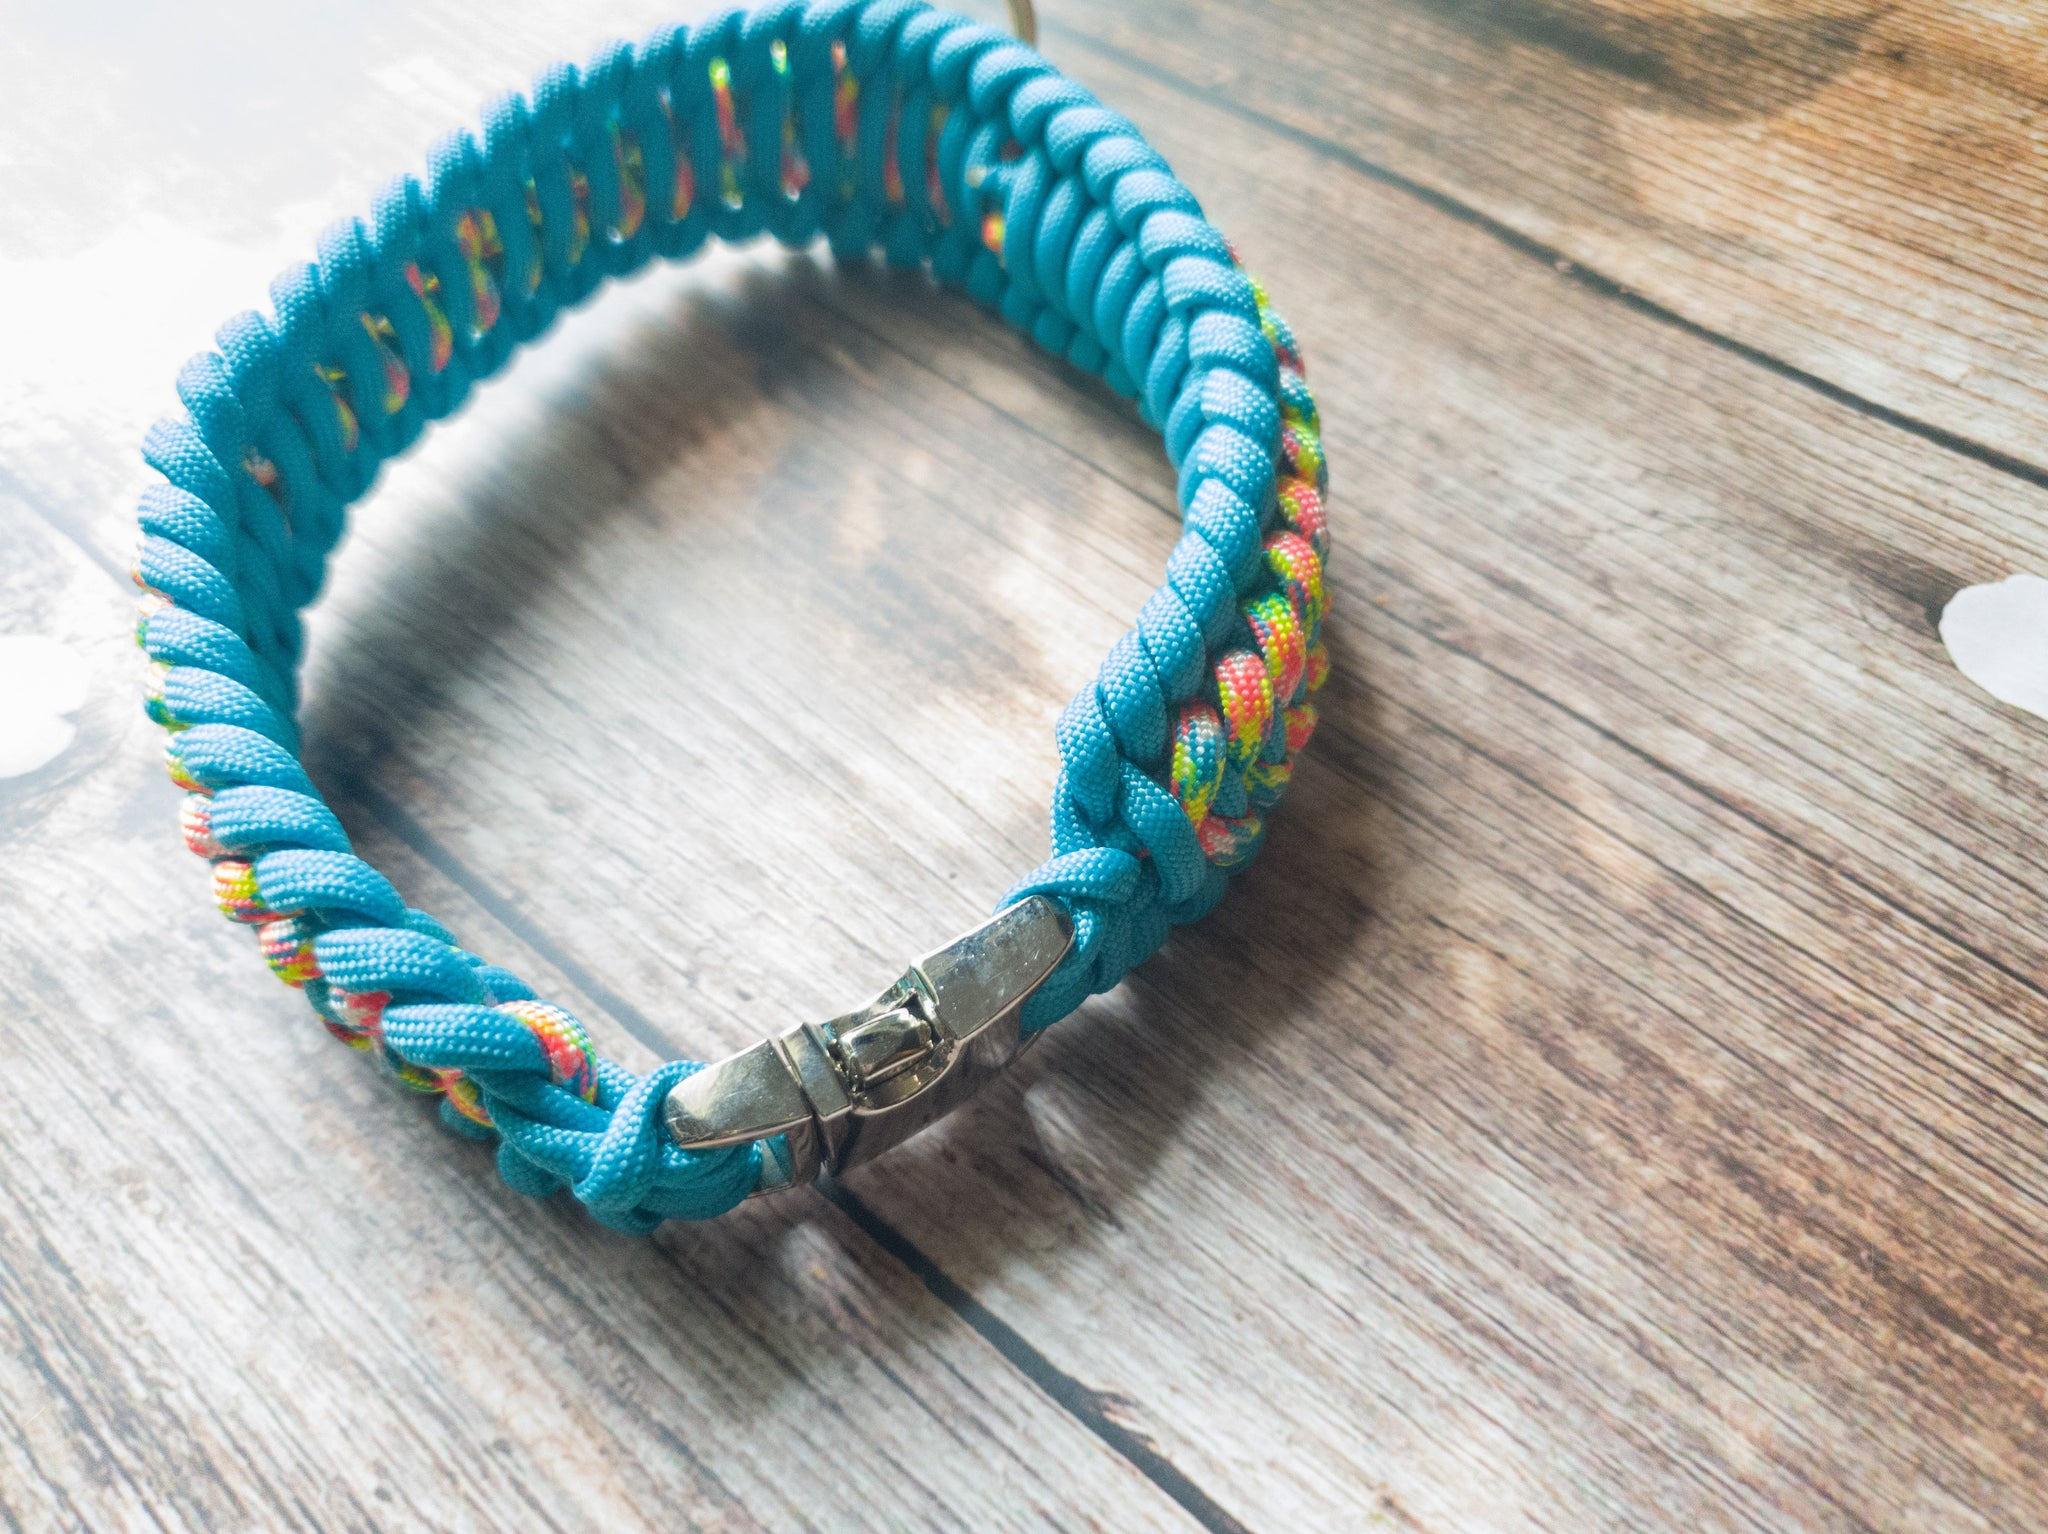 Trilobite Dog Collar Turquoise & Cotton Candy Mix